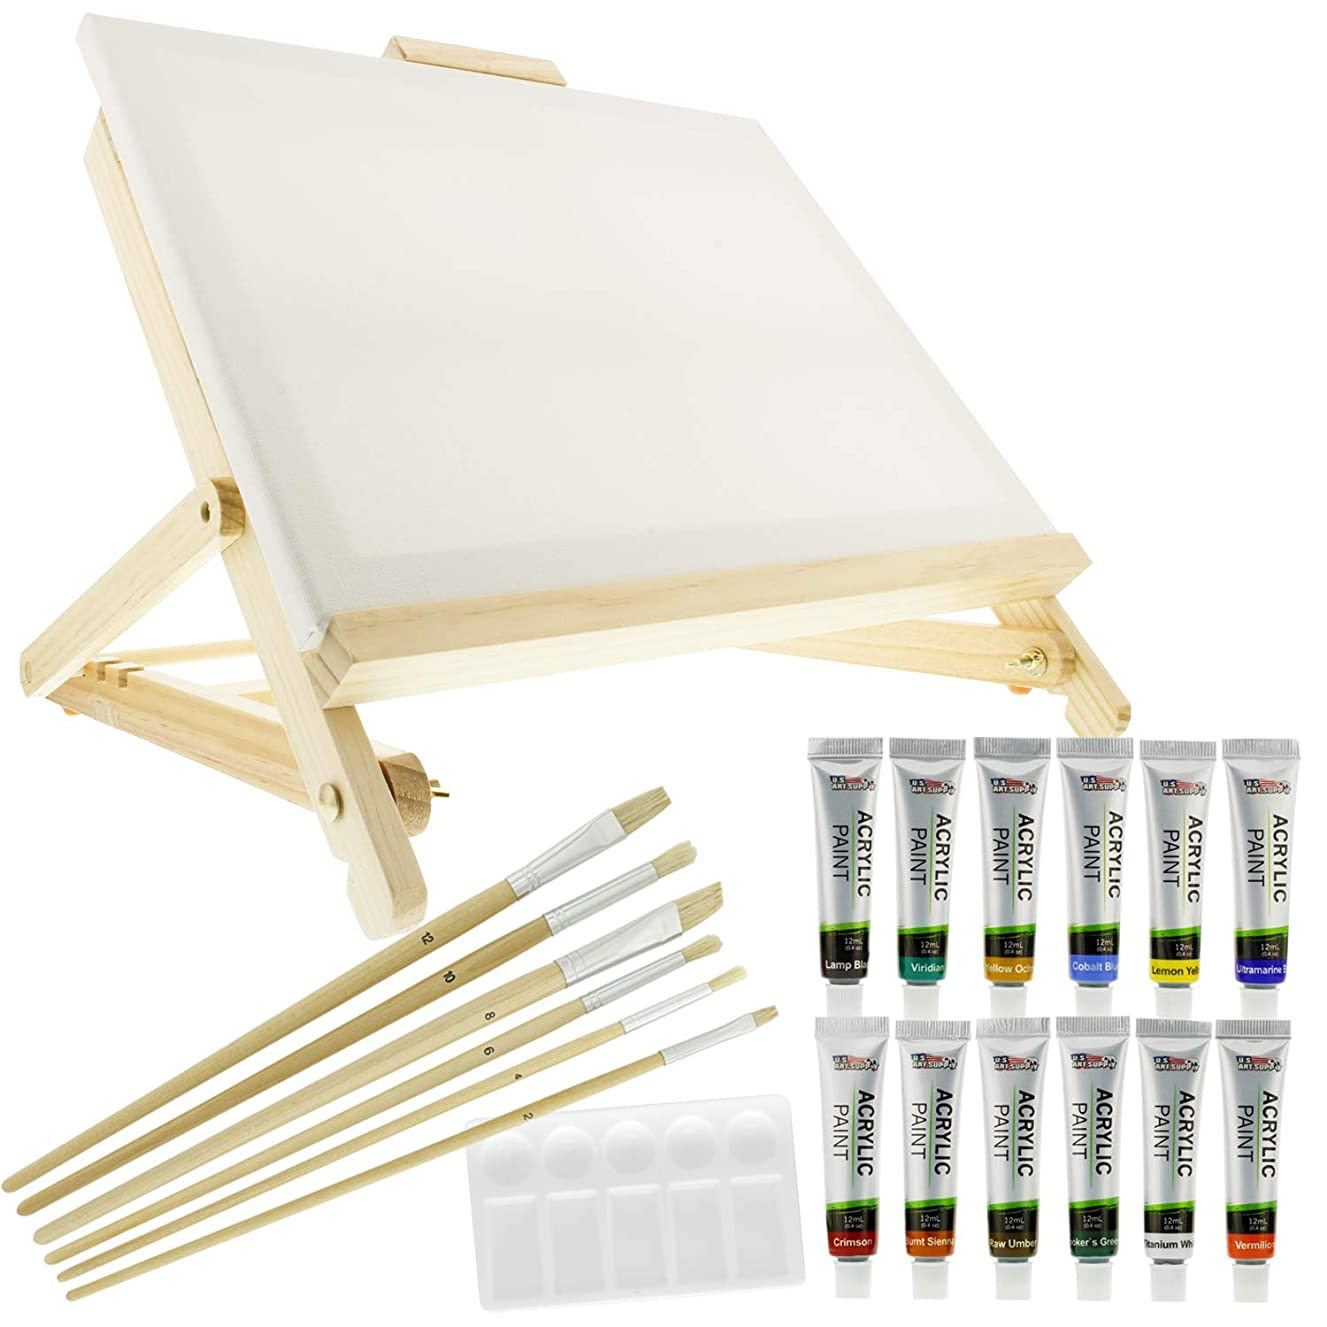 US Art Supply 21-Piece Acrylic Painting Table Easel Set with, 12-Tubes Acrylic Painting Colors, 11